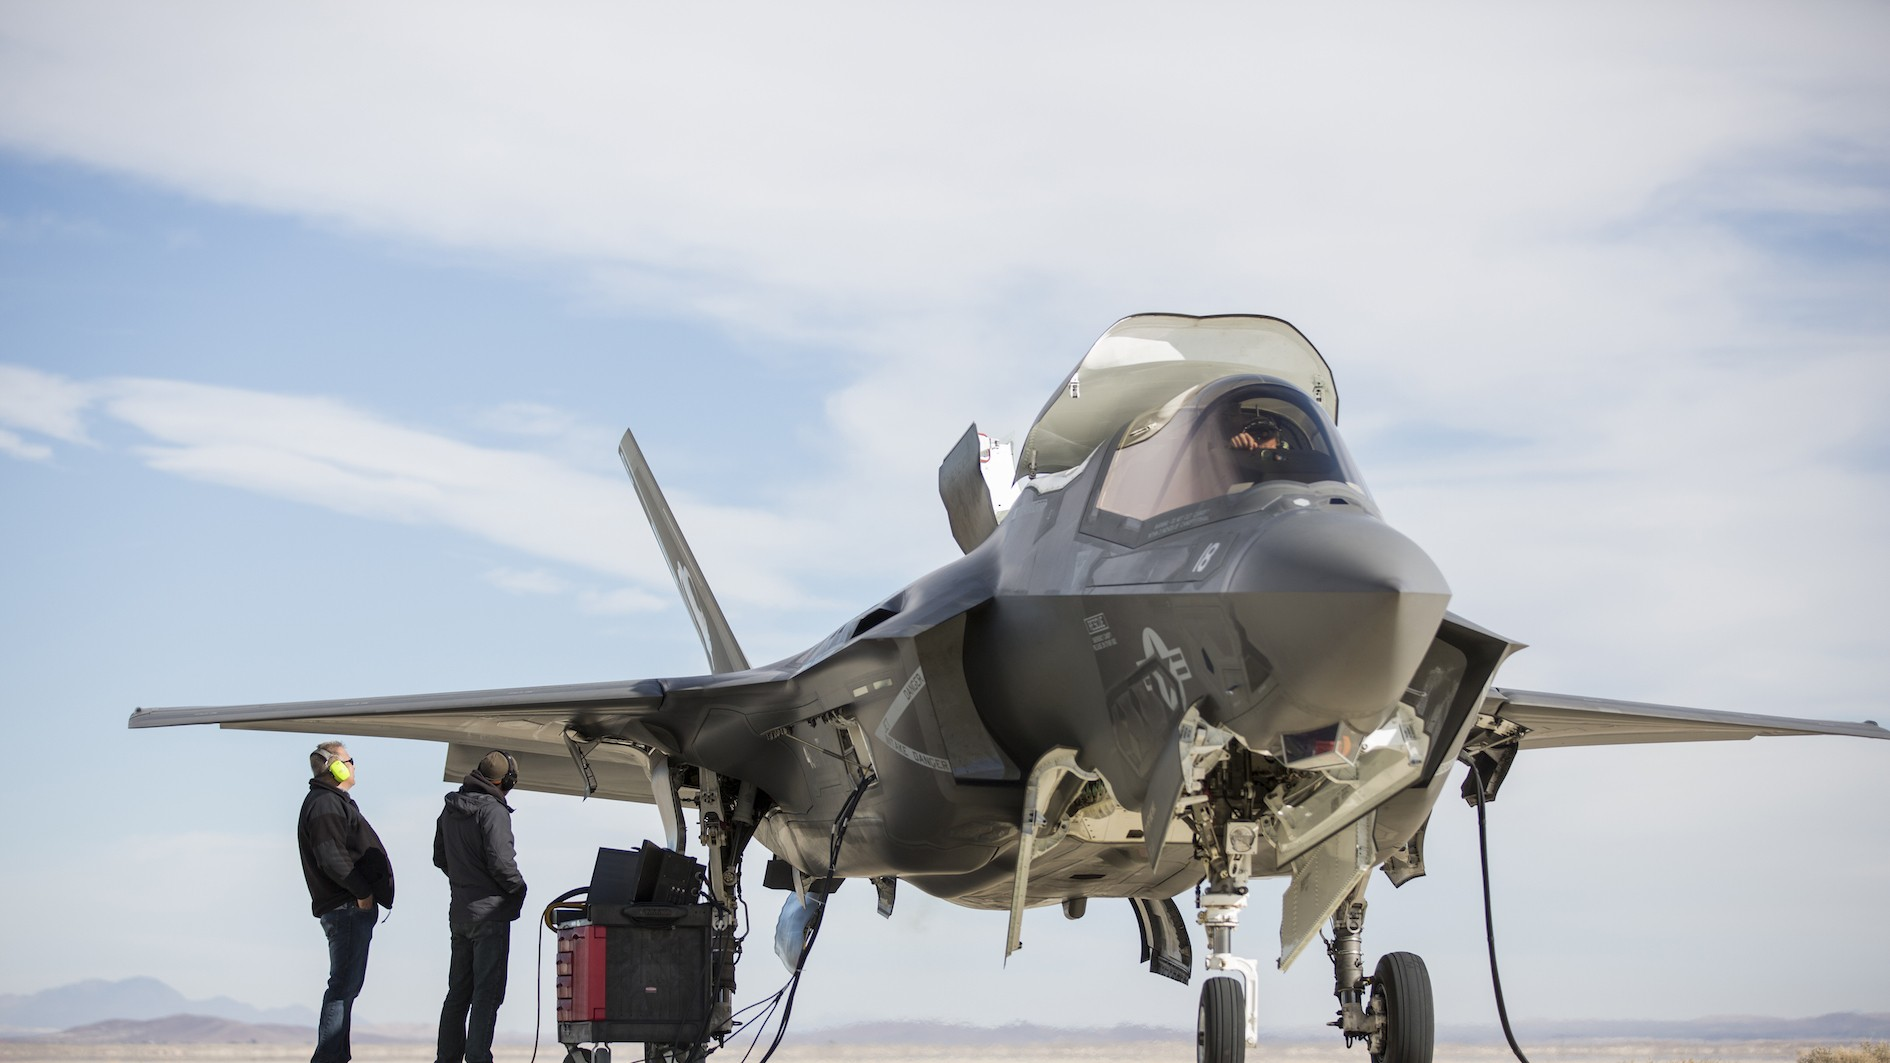 Canada may become the first country to ditch the F-35 fighter jet